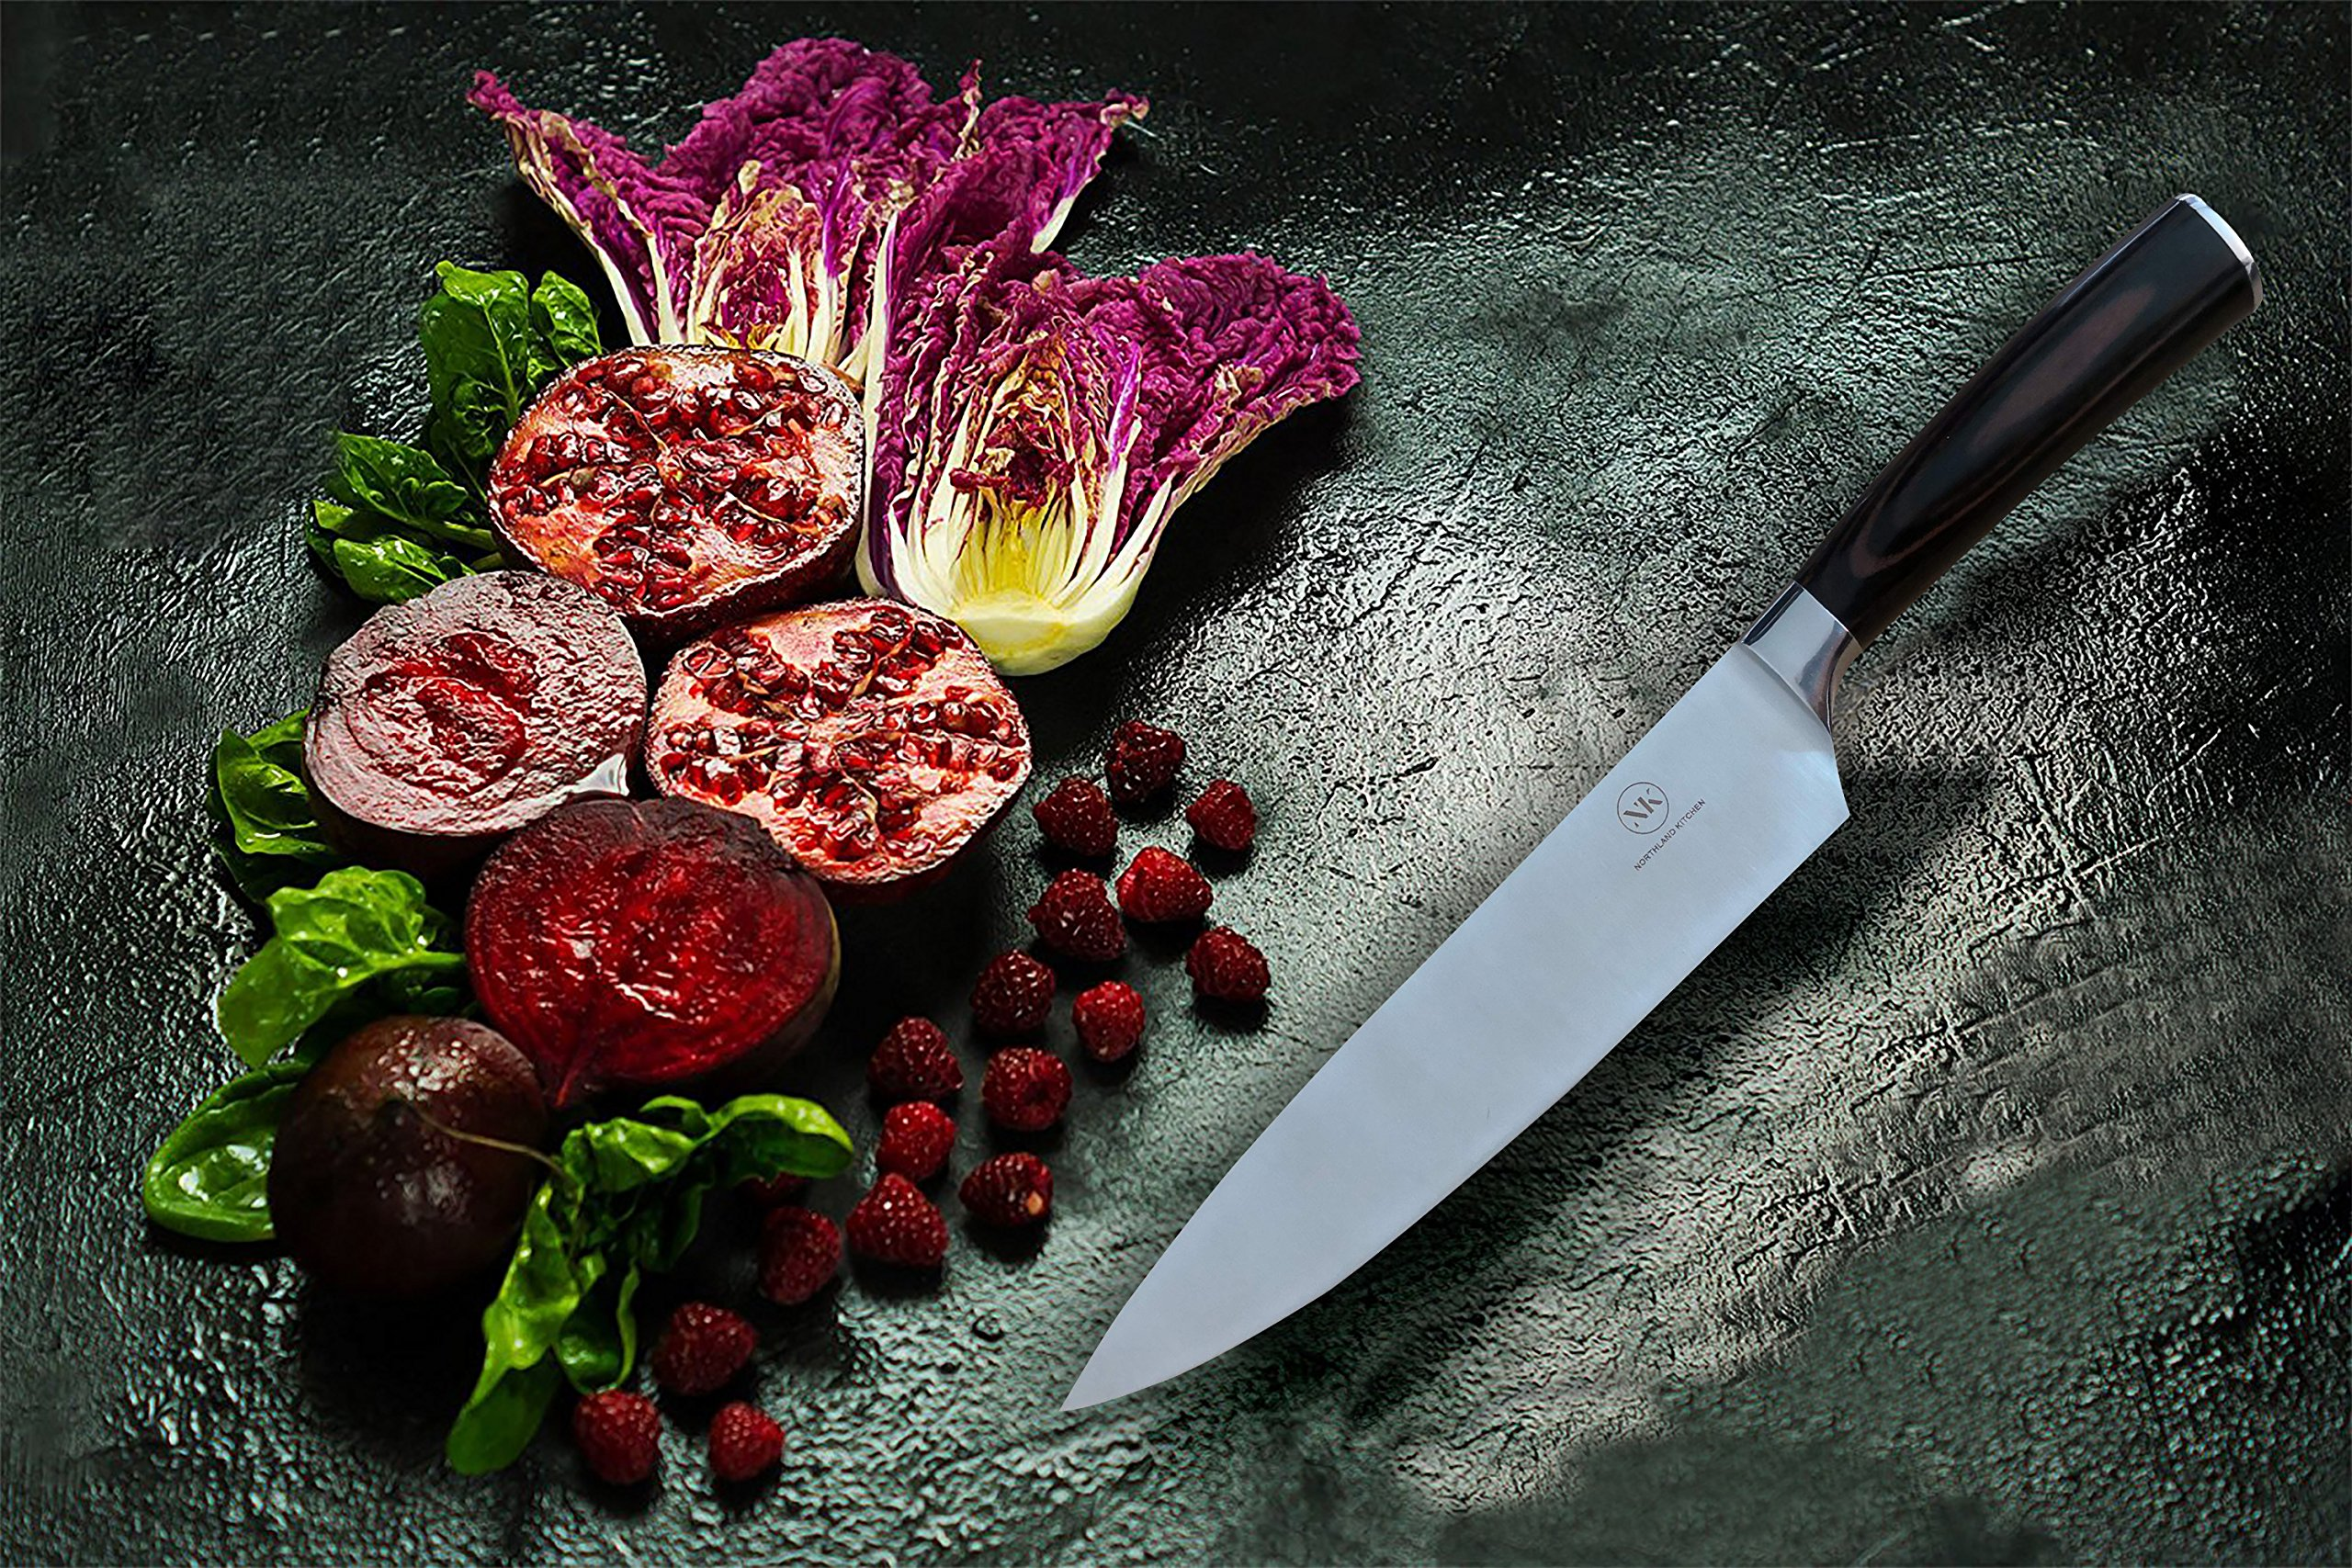 Chef's Knife by Northland Kitchen - Professional 8 inch Stainless Steel Blade with Wood Handle - Ergonomic and Sharp - Well Balanced and Weighted - High Carbon Steel - For Home and Restaurant by Northland Kitchen (Image #7)